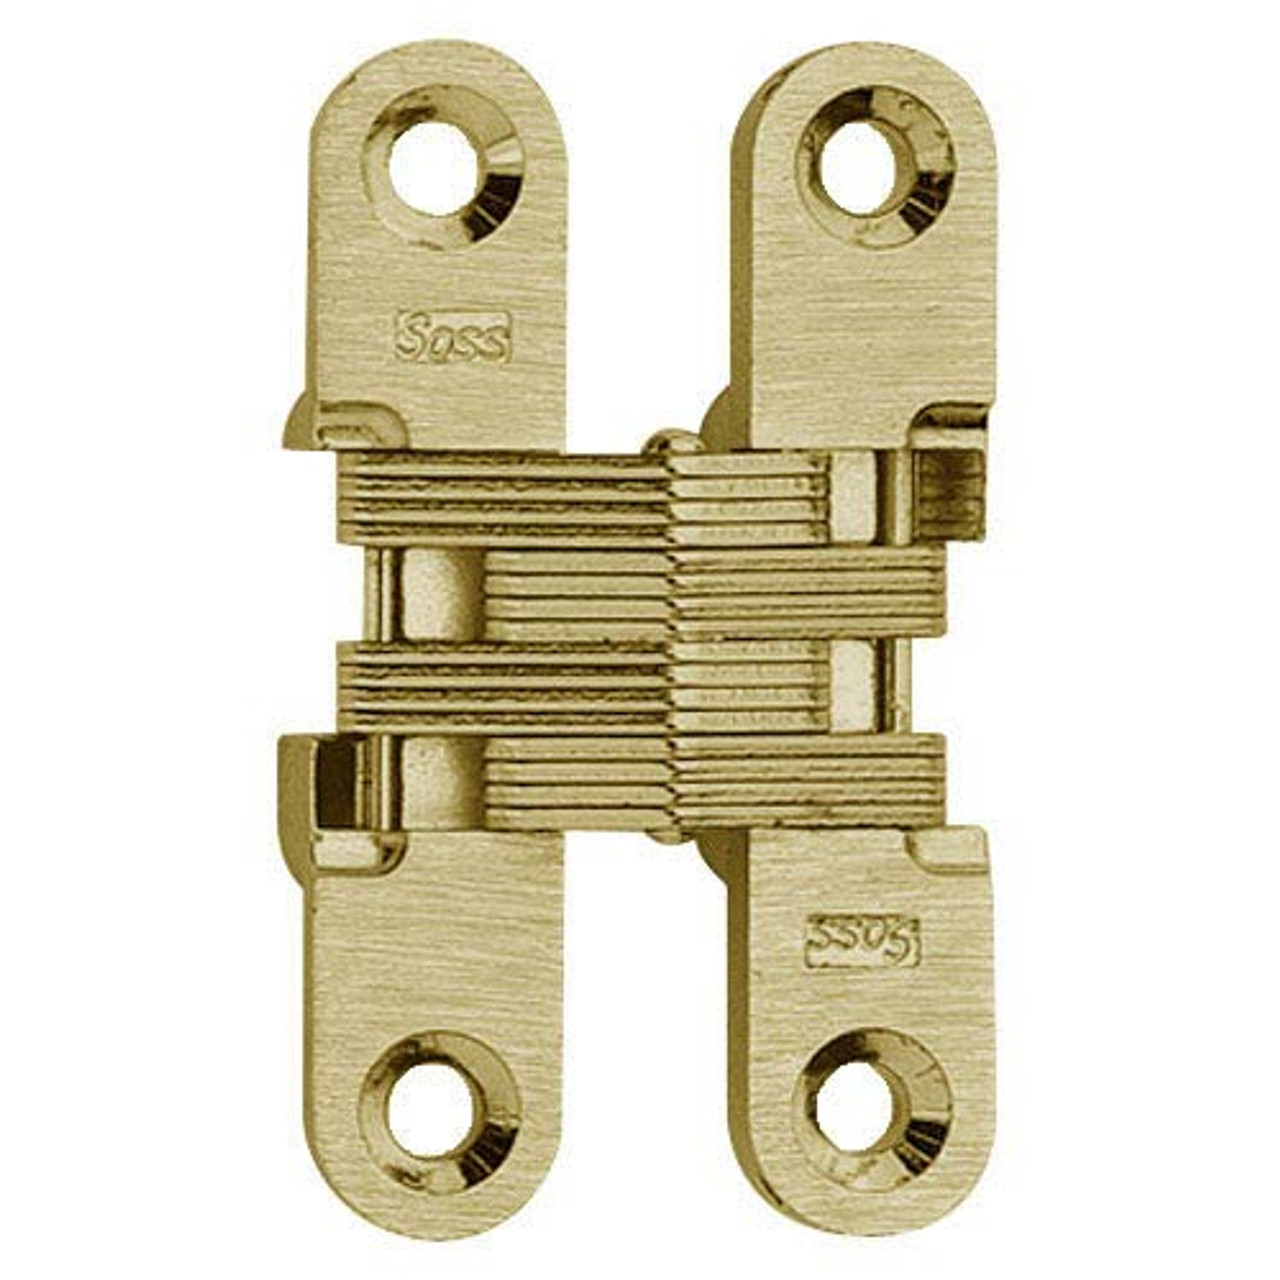 204C-US3 Soss Invisible Hinge in Bright Brass Finish